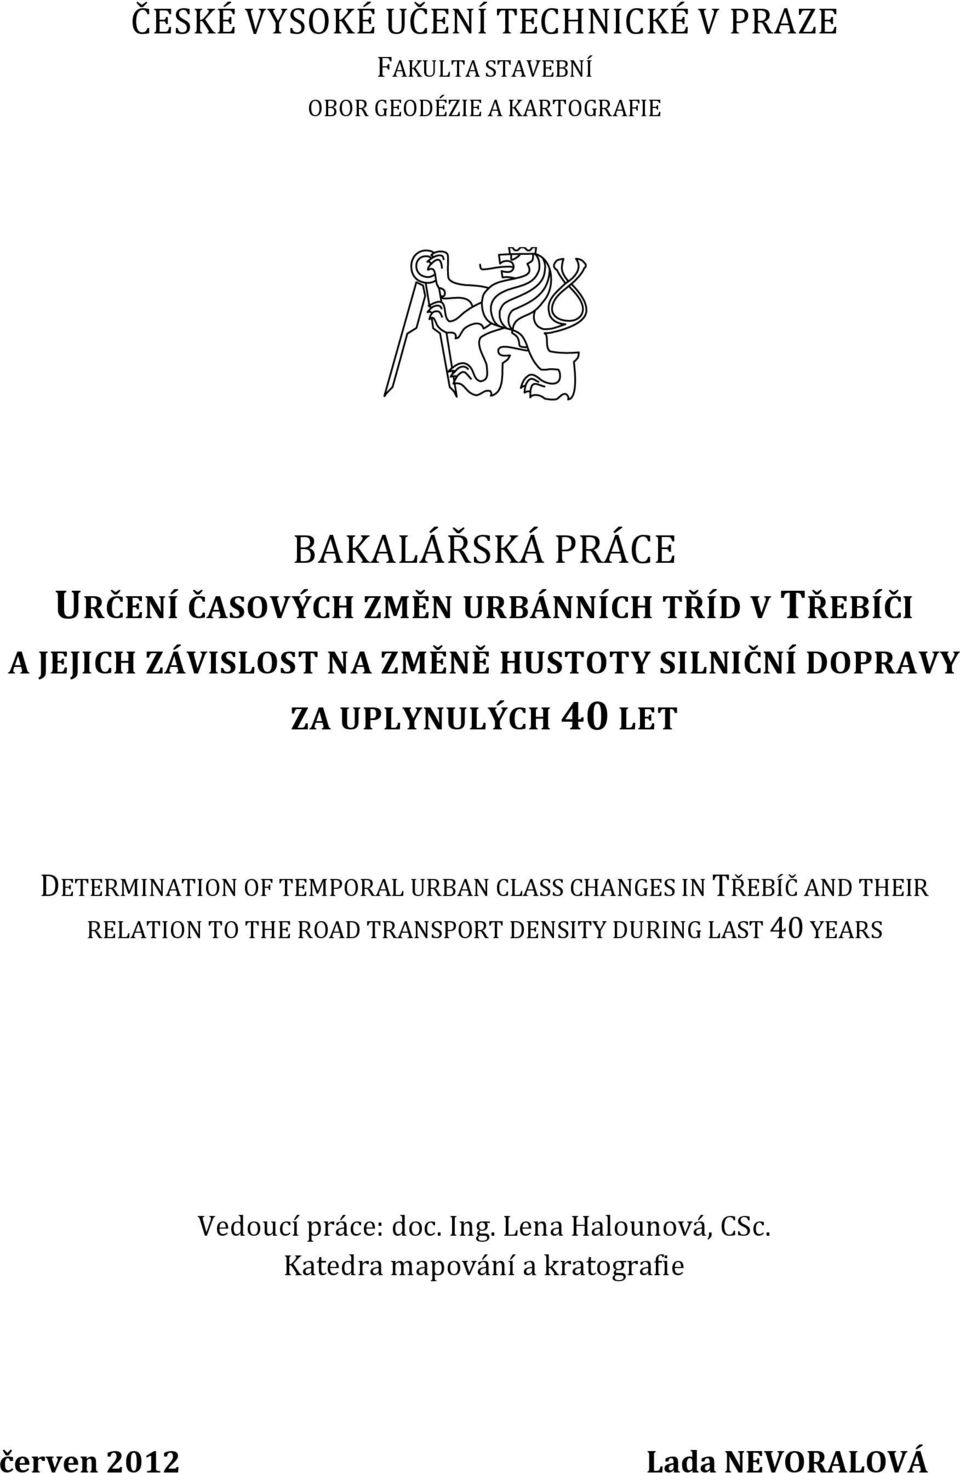 DETERMINATION OF TEMPORAL URBAN CLASS CHANGES IN TŘEBÍČ AND THEIR RELATION TO THE ROAD TRANSPORT DENSITY DURING